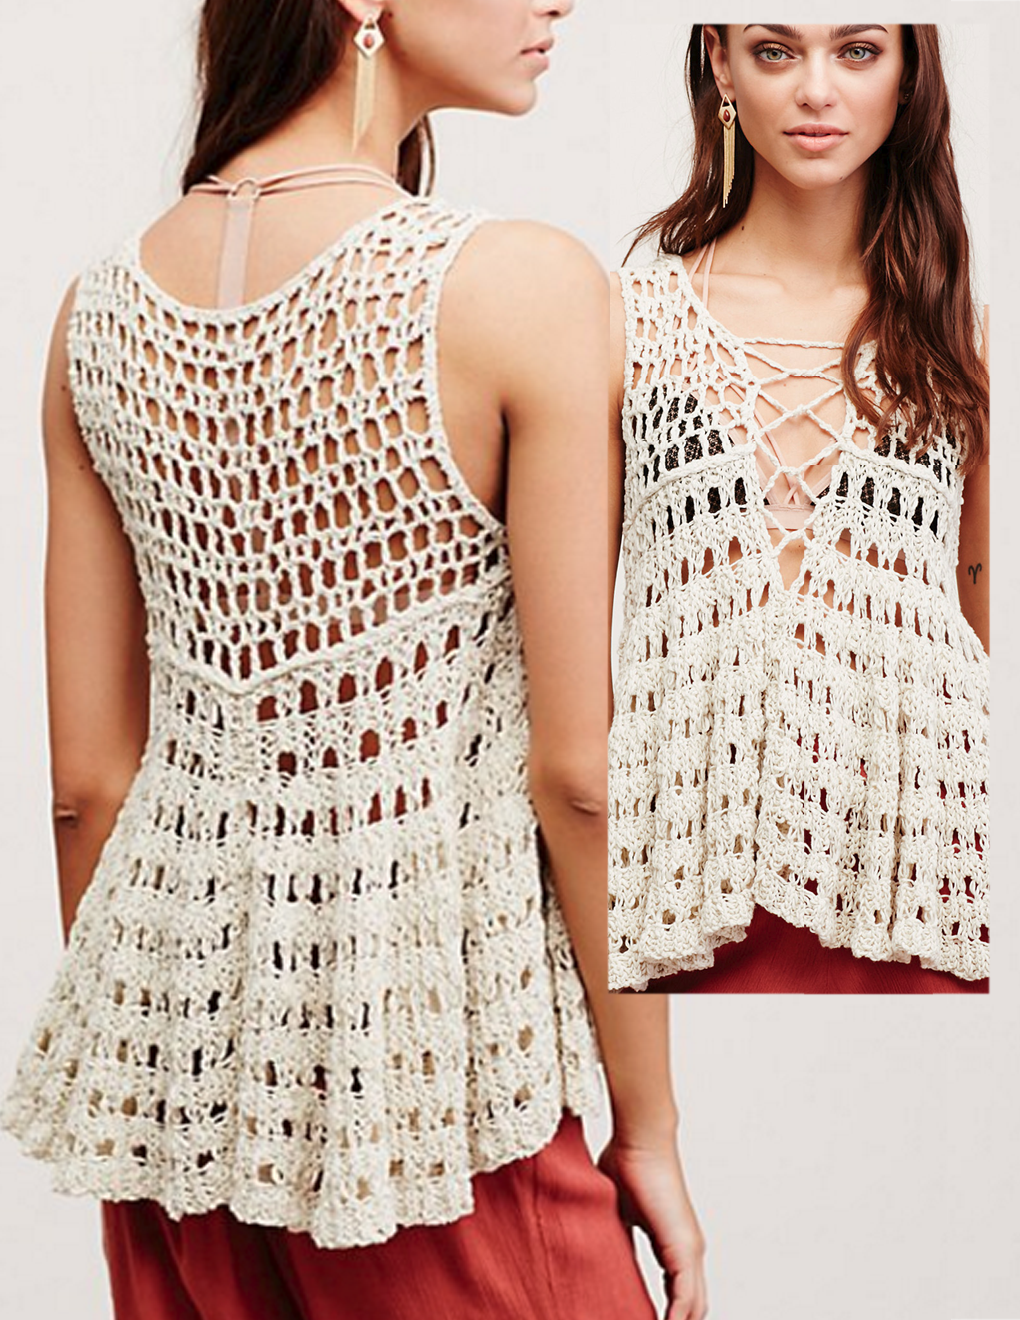 Free People | mix of crochet top and knit skirt | Crochet: Top ...